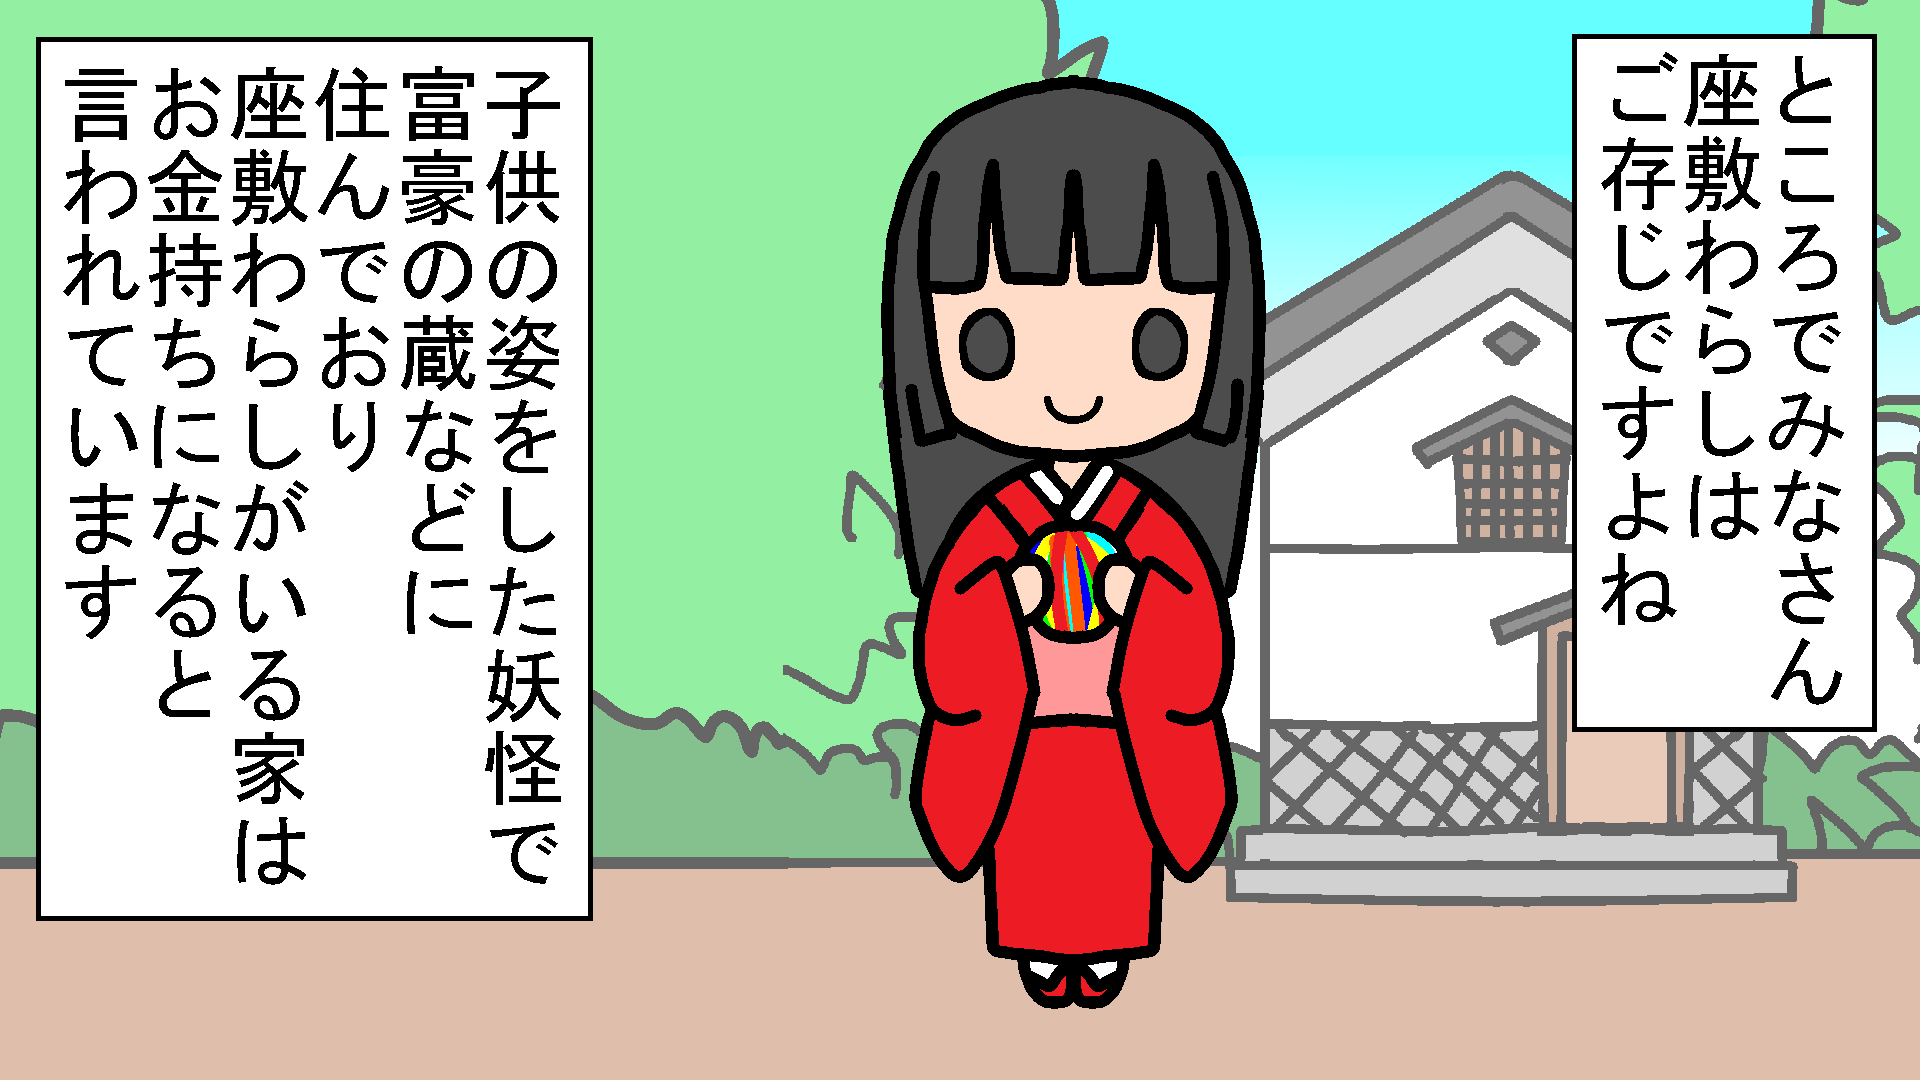 youtubeの挿絵(座敷わらし)_a0040621_20143346.png